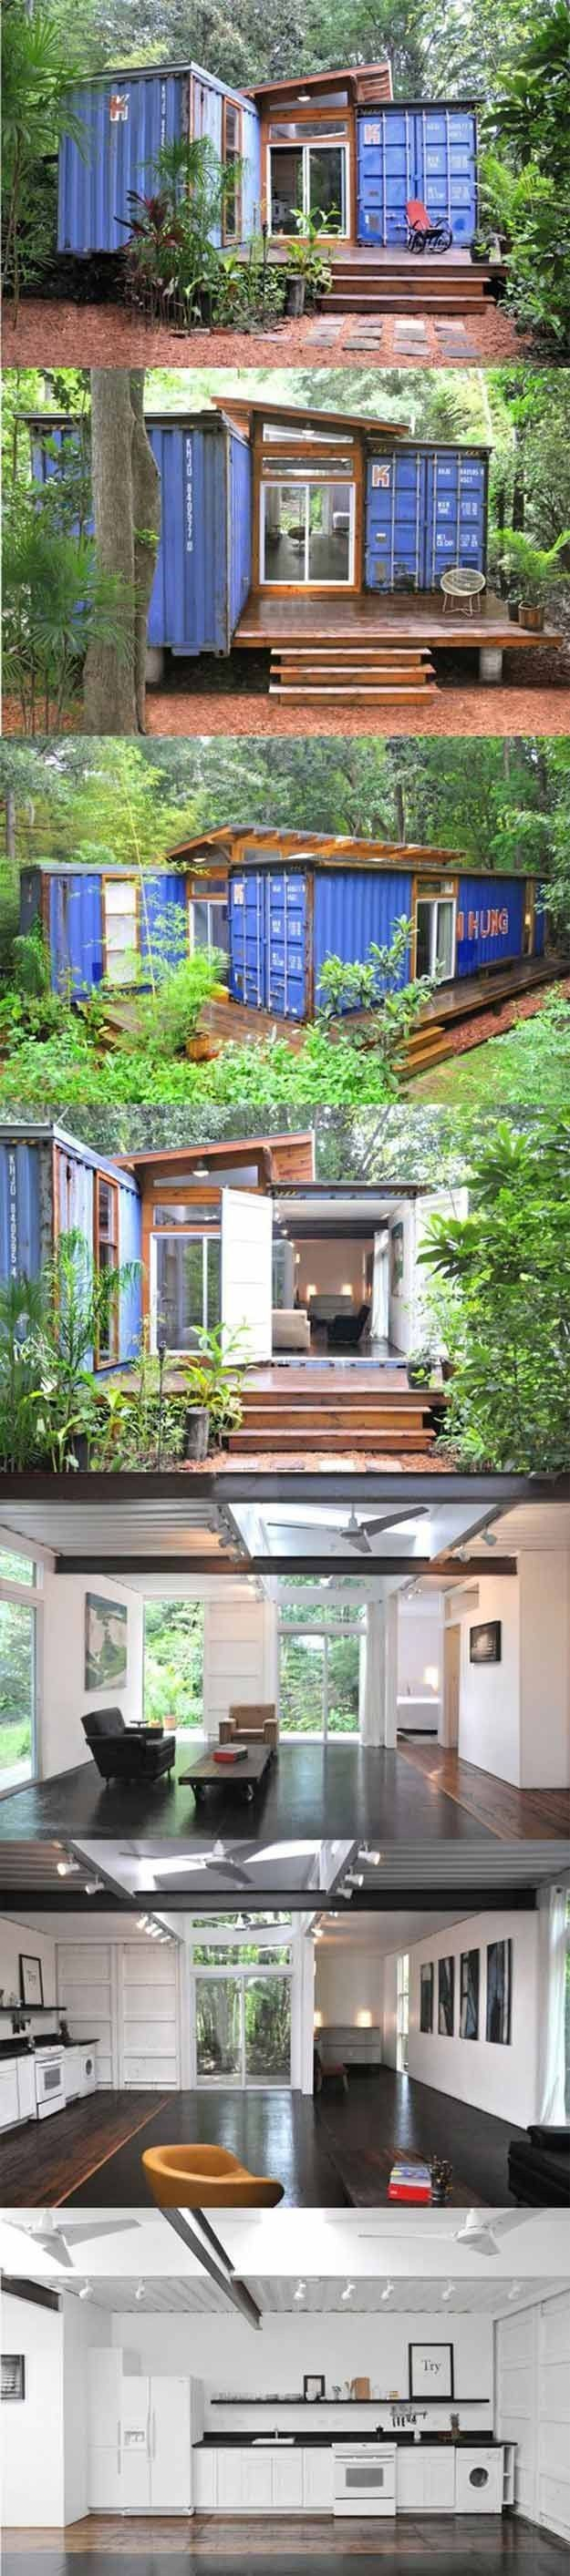 wood profits basic container home 12 cool container homes how to build a beautiful house from the container awesome diy ideas and design you must